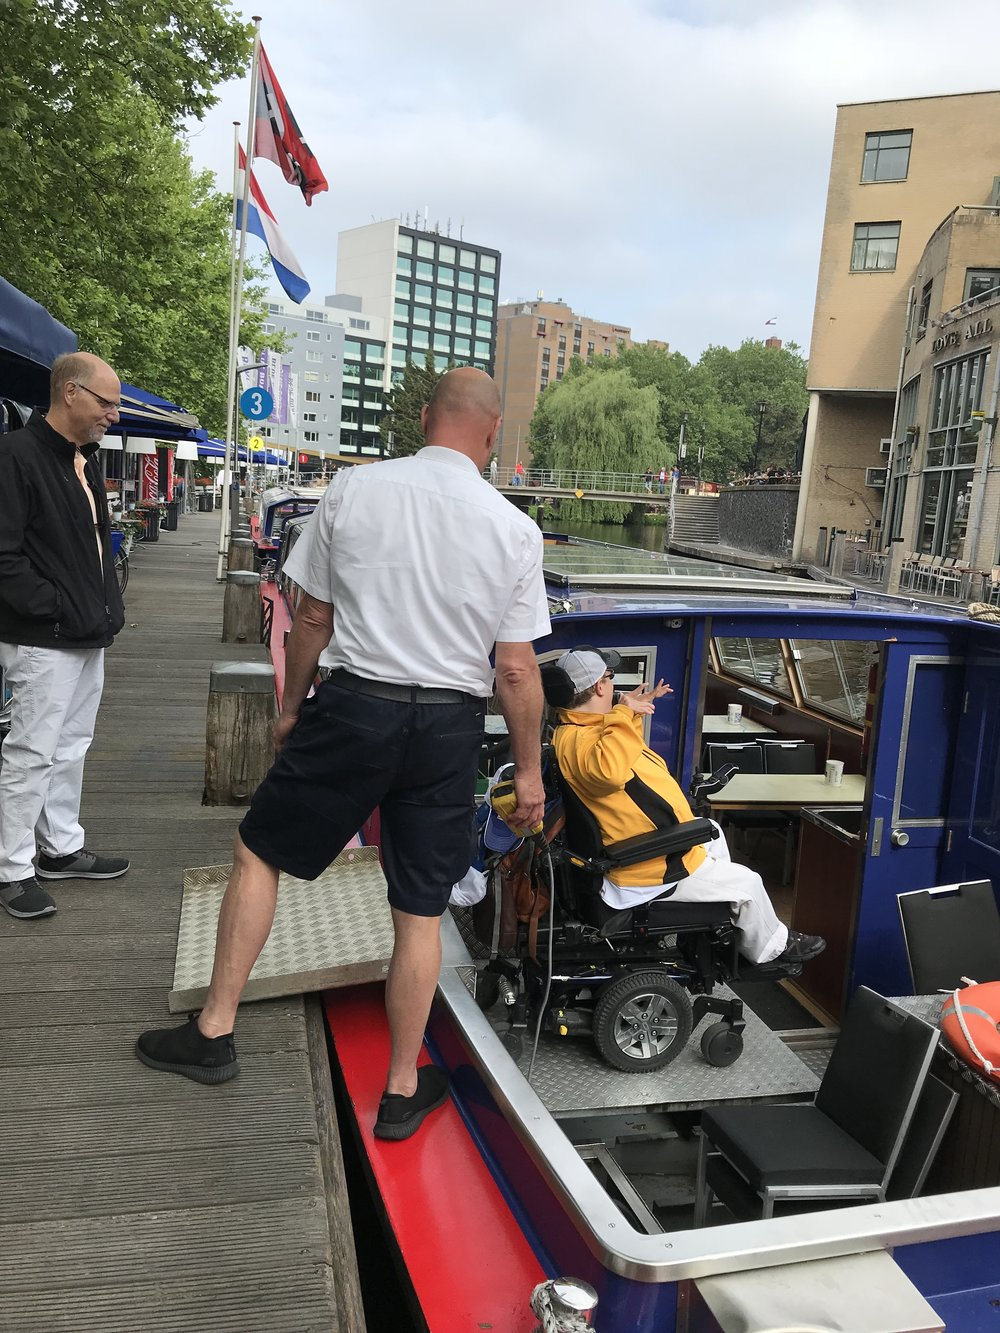 PHOTO: Matthew in his chair, in a yellow shirt, using a lift to get into a canal boat in Amsterdam.